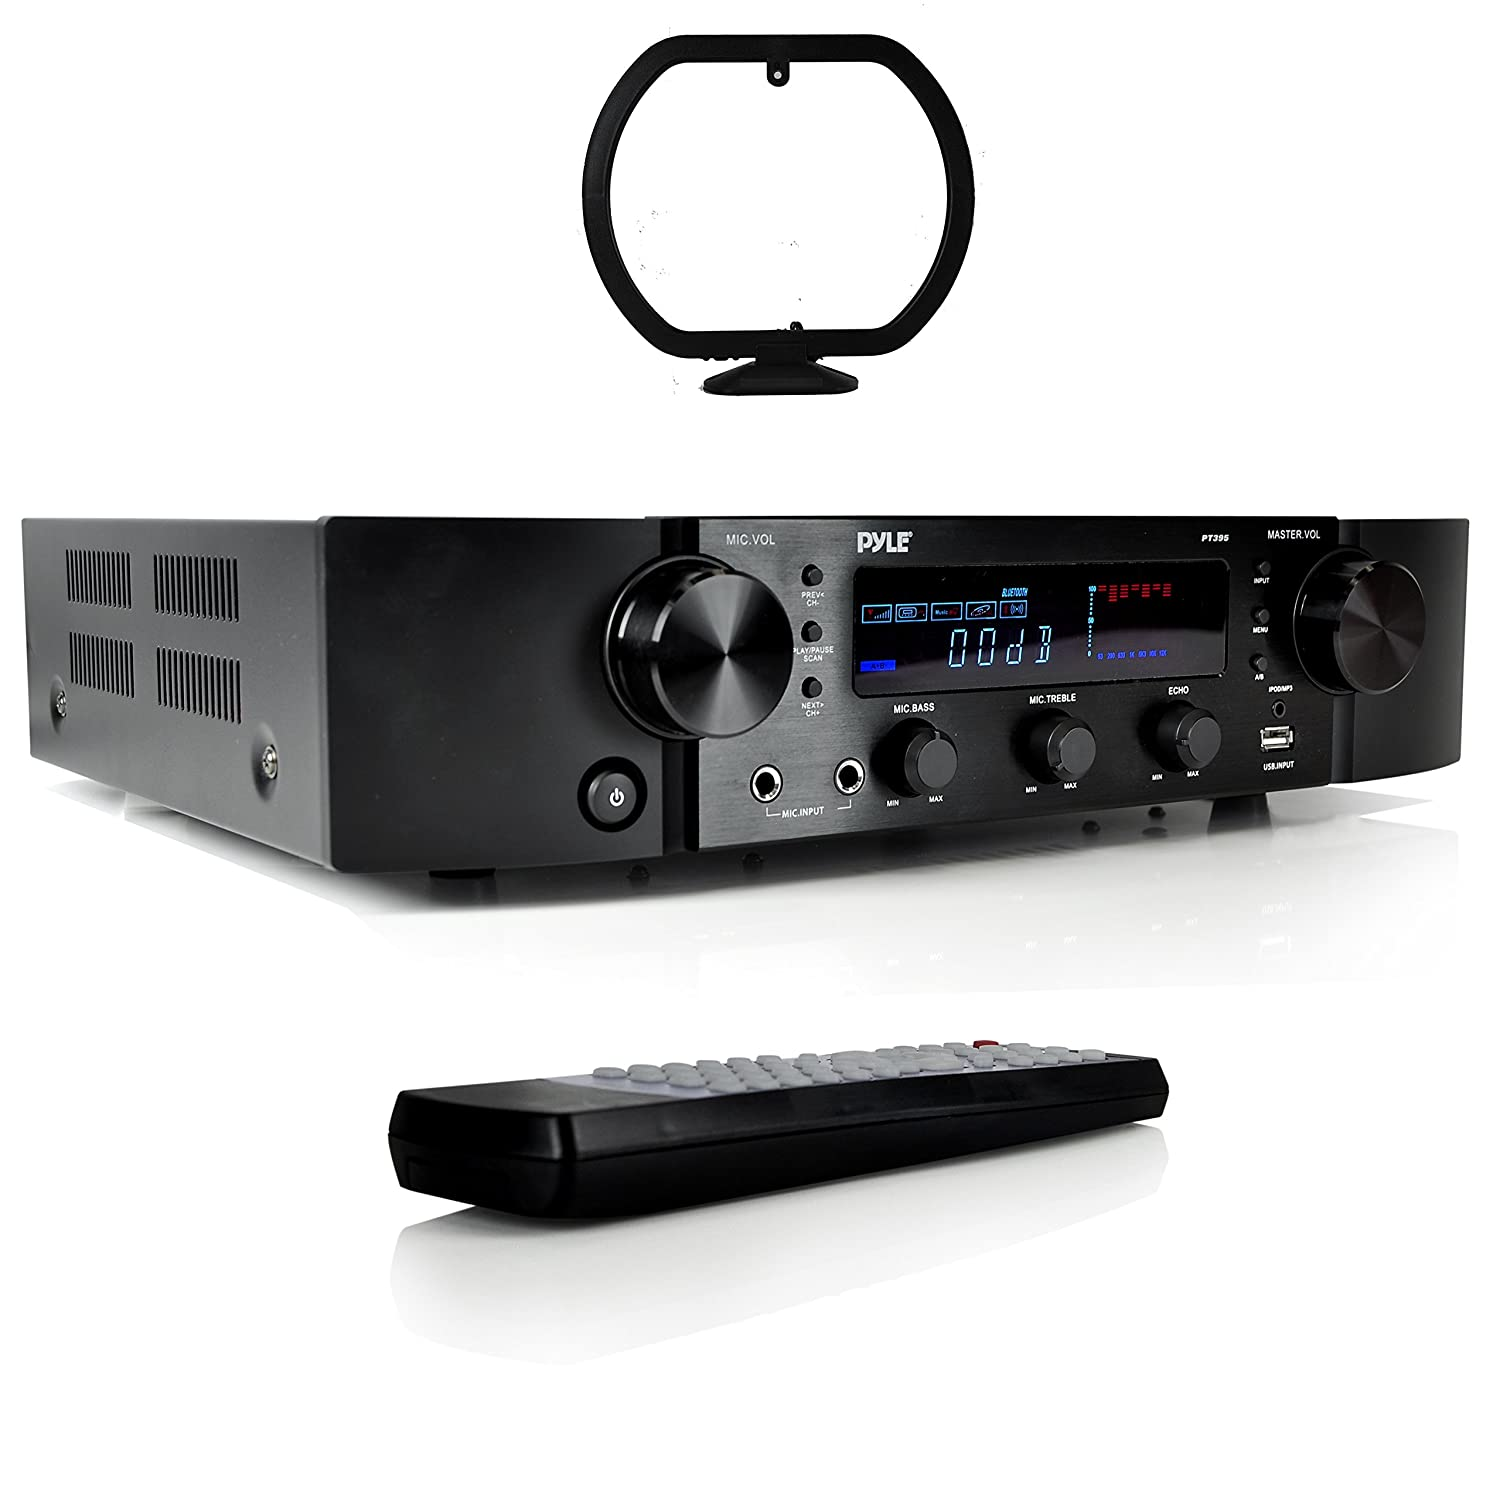 Pyle Updated Pyle Stereo Preamplifier Home Entertainment Receiver Bluetooth Amp Rca Audio Input 2 Channel Amp Am Fm Radio With Lcd Display Mp3 Usb Aux